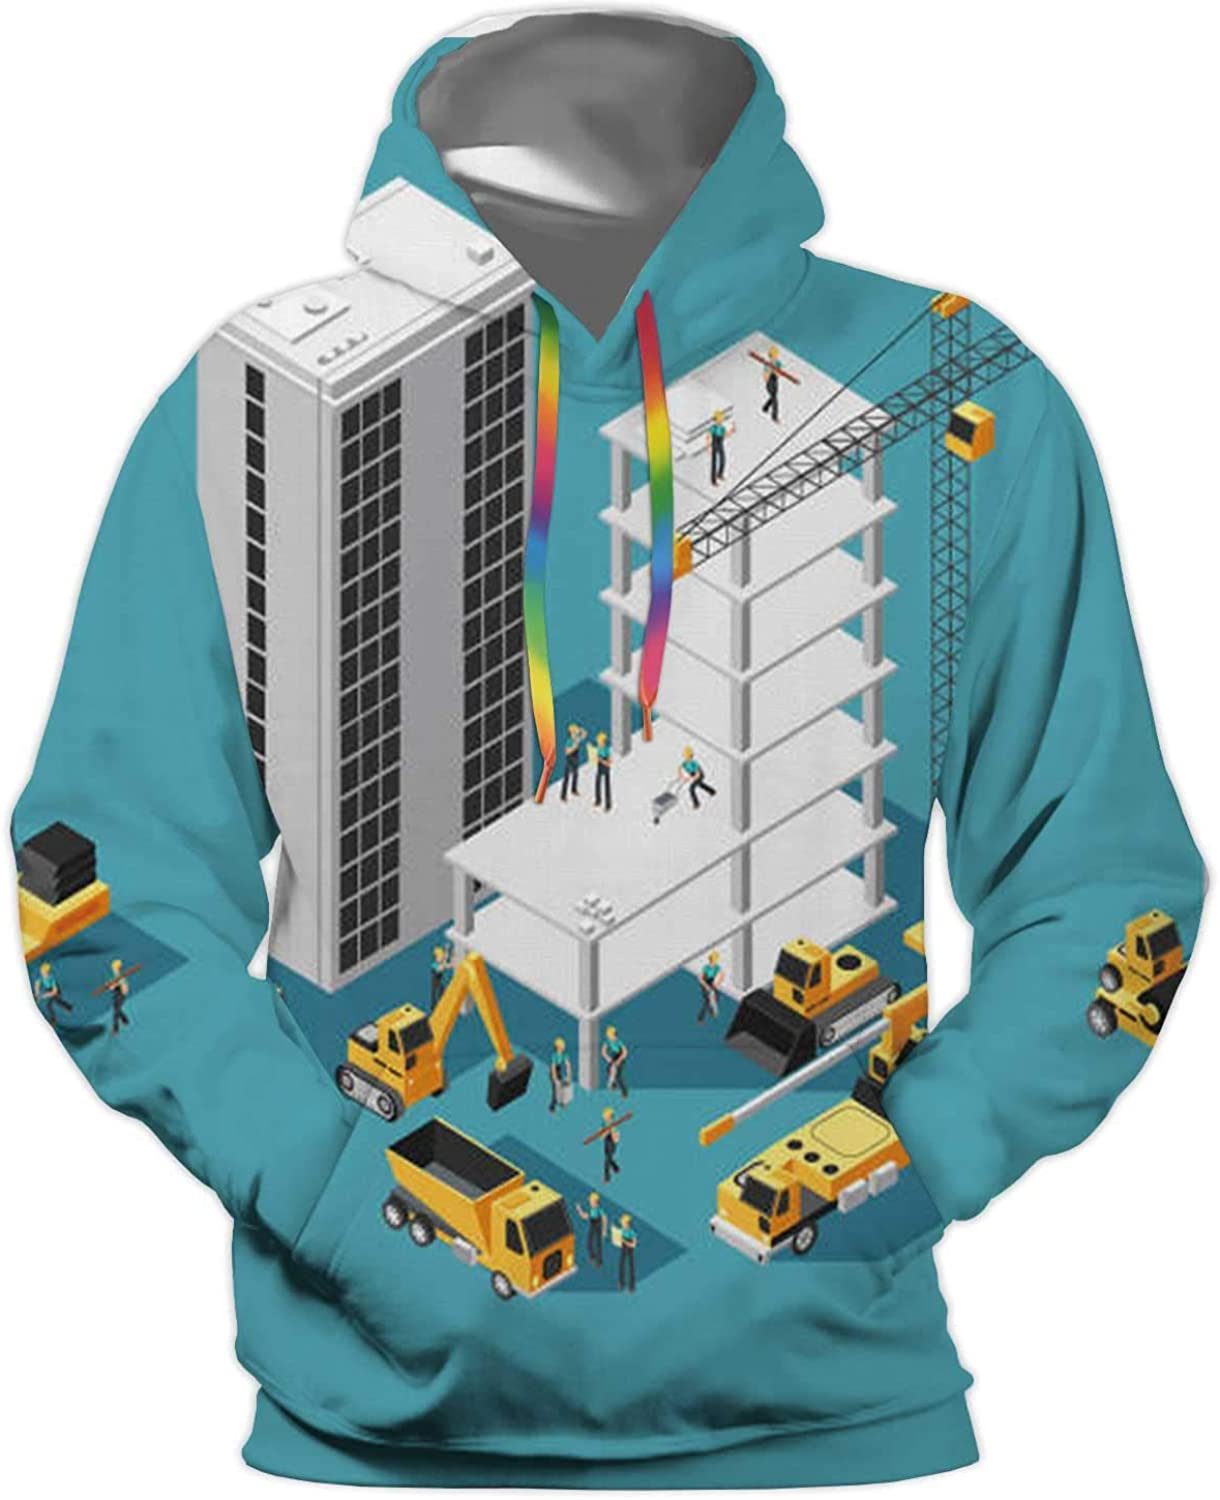 al Lines Under a Night Sky with Moon,Unisex 3D Print Pullover Hooded Hoodies with Big Pocket Power line